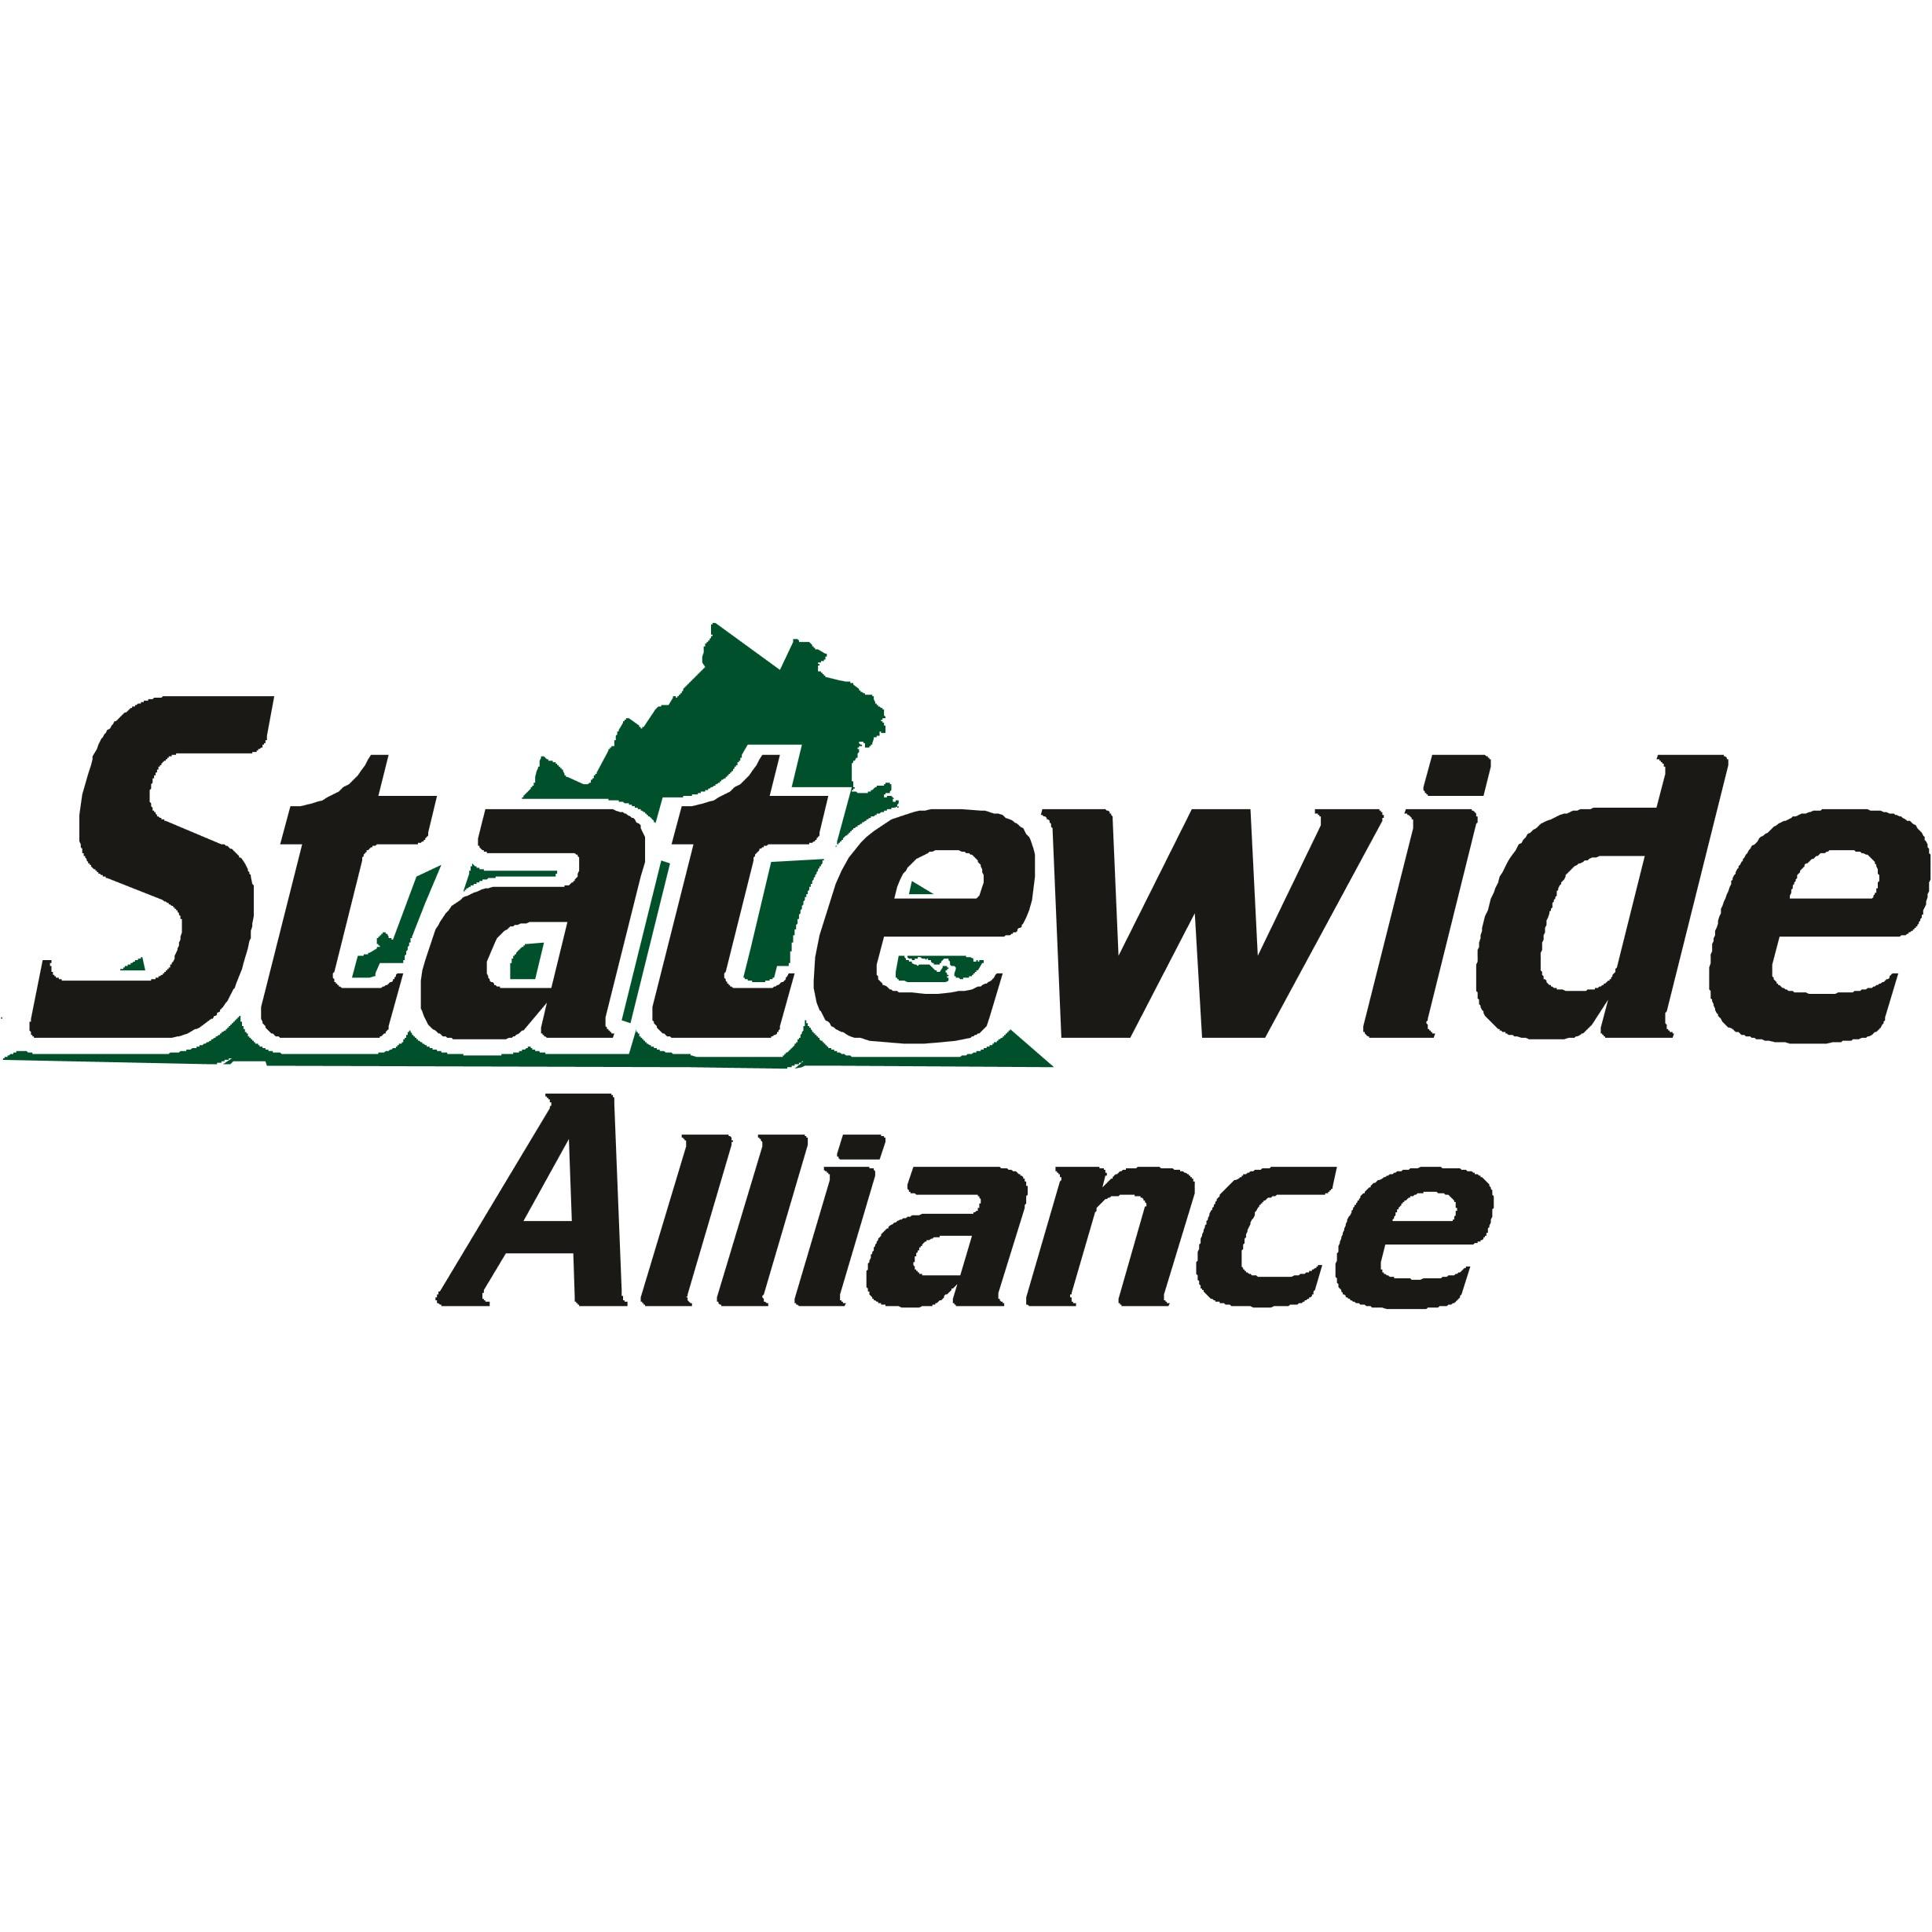 image of Statewide Alliance